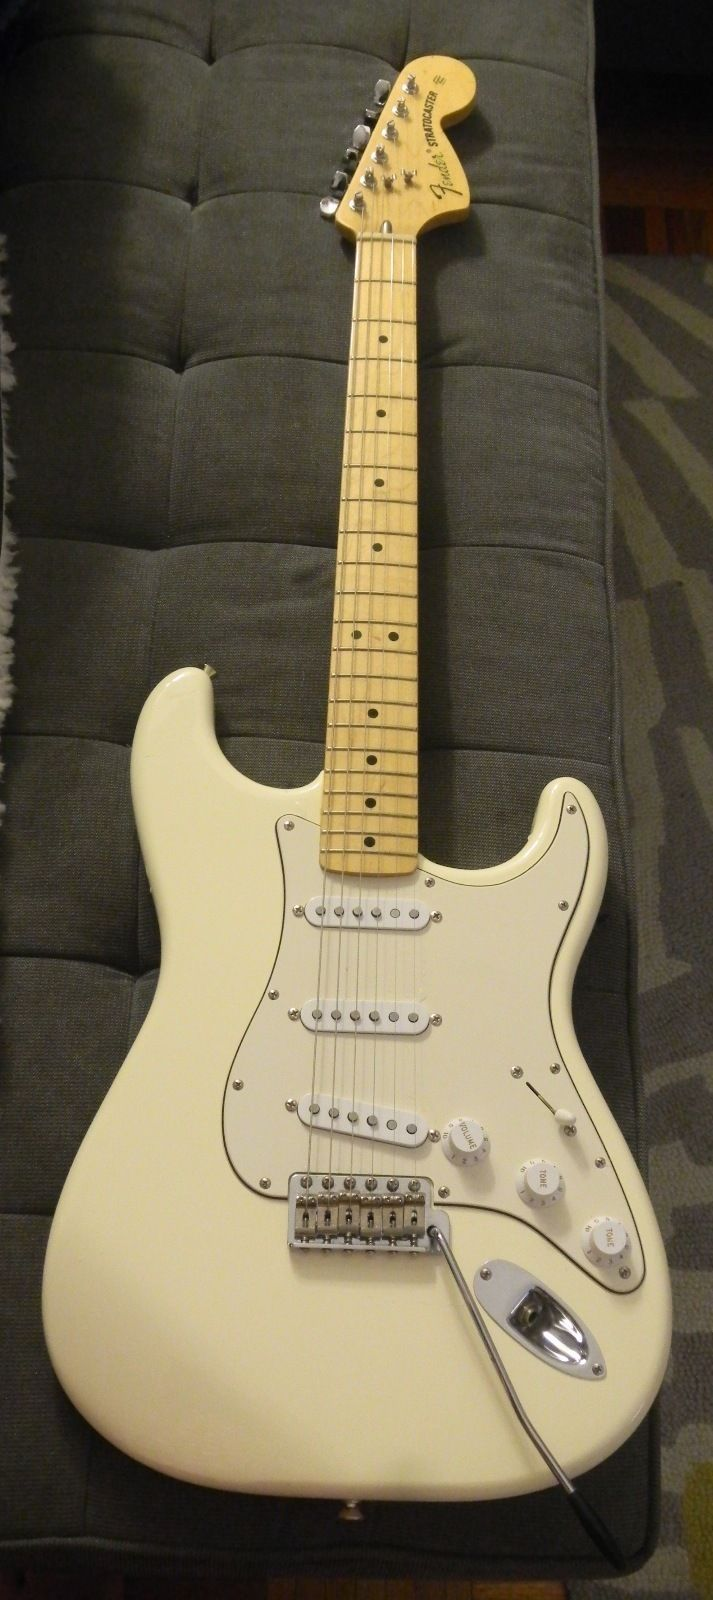 fender 70 39 s stratocaster electric guitar strats and specs in 2019 guitar music guitar. Black Bedroom Furniture Sets. Home Design Ideas